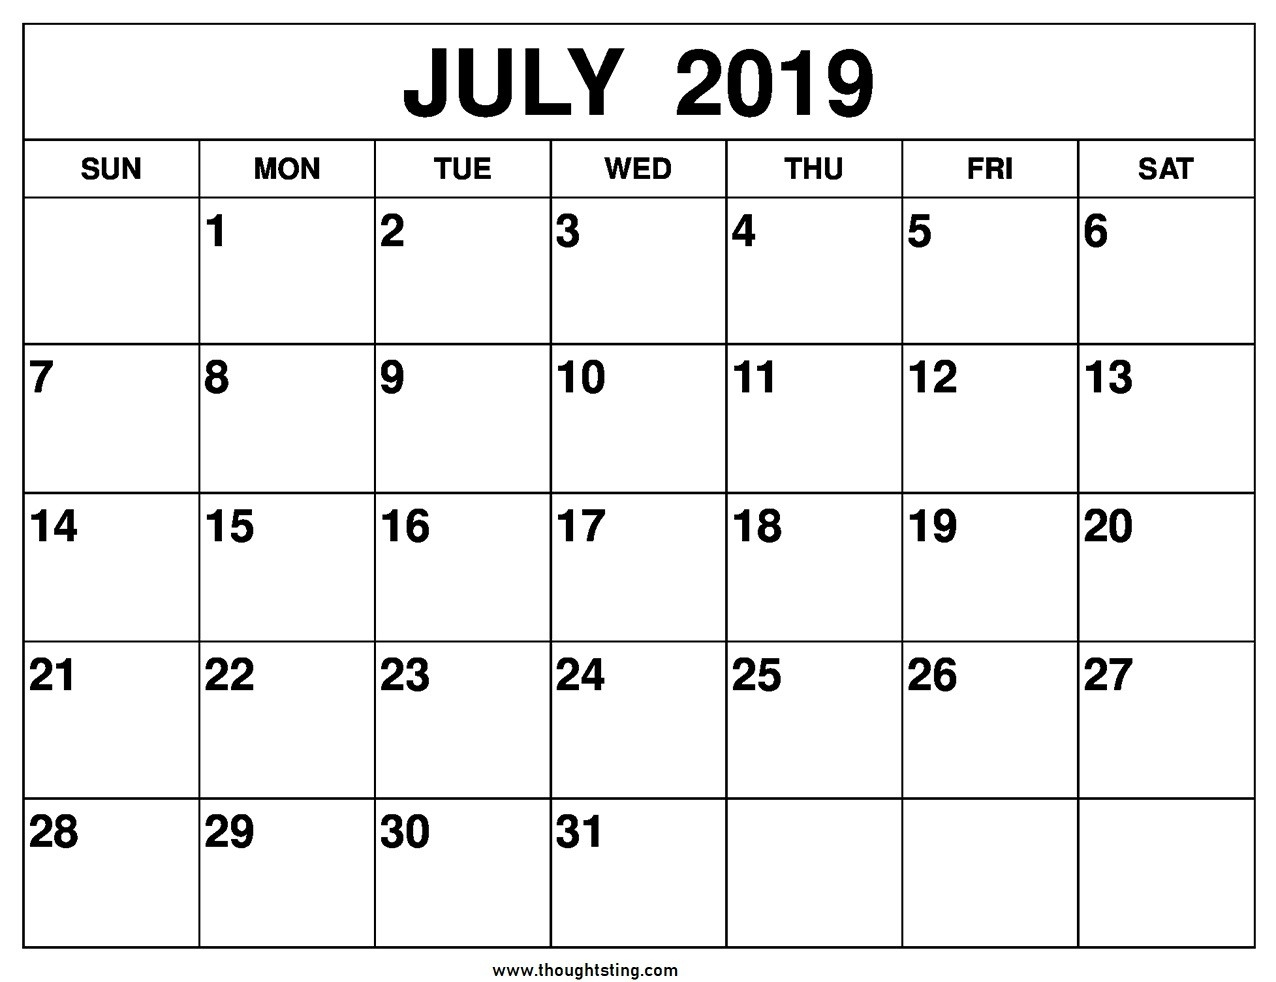 July 2019 Calendar Printable One Page Template - Free  Full Page Calendar